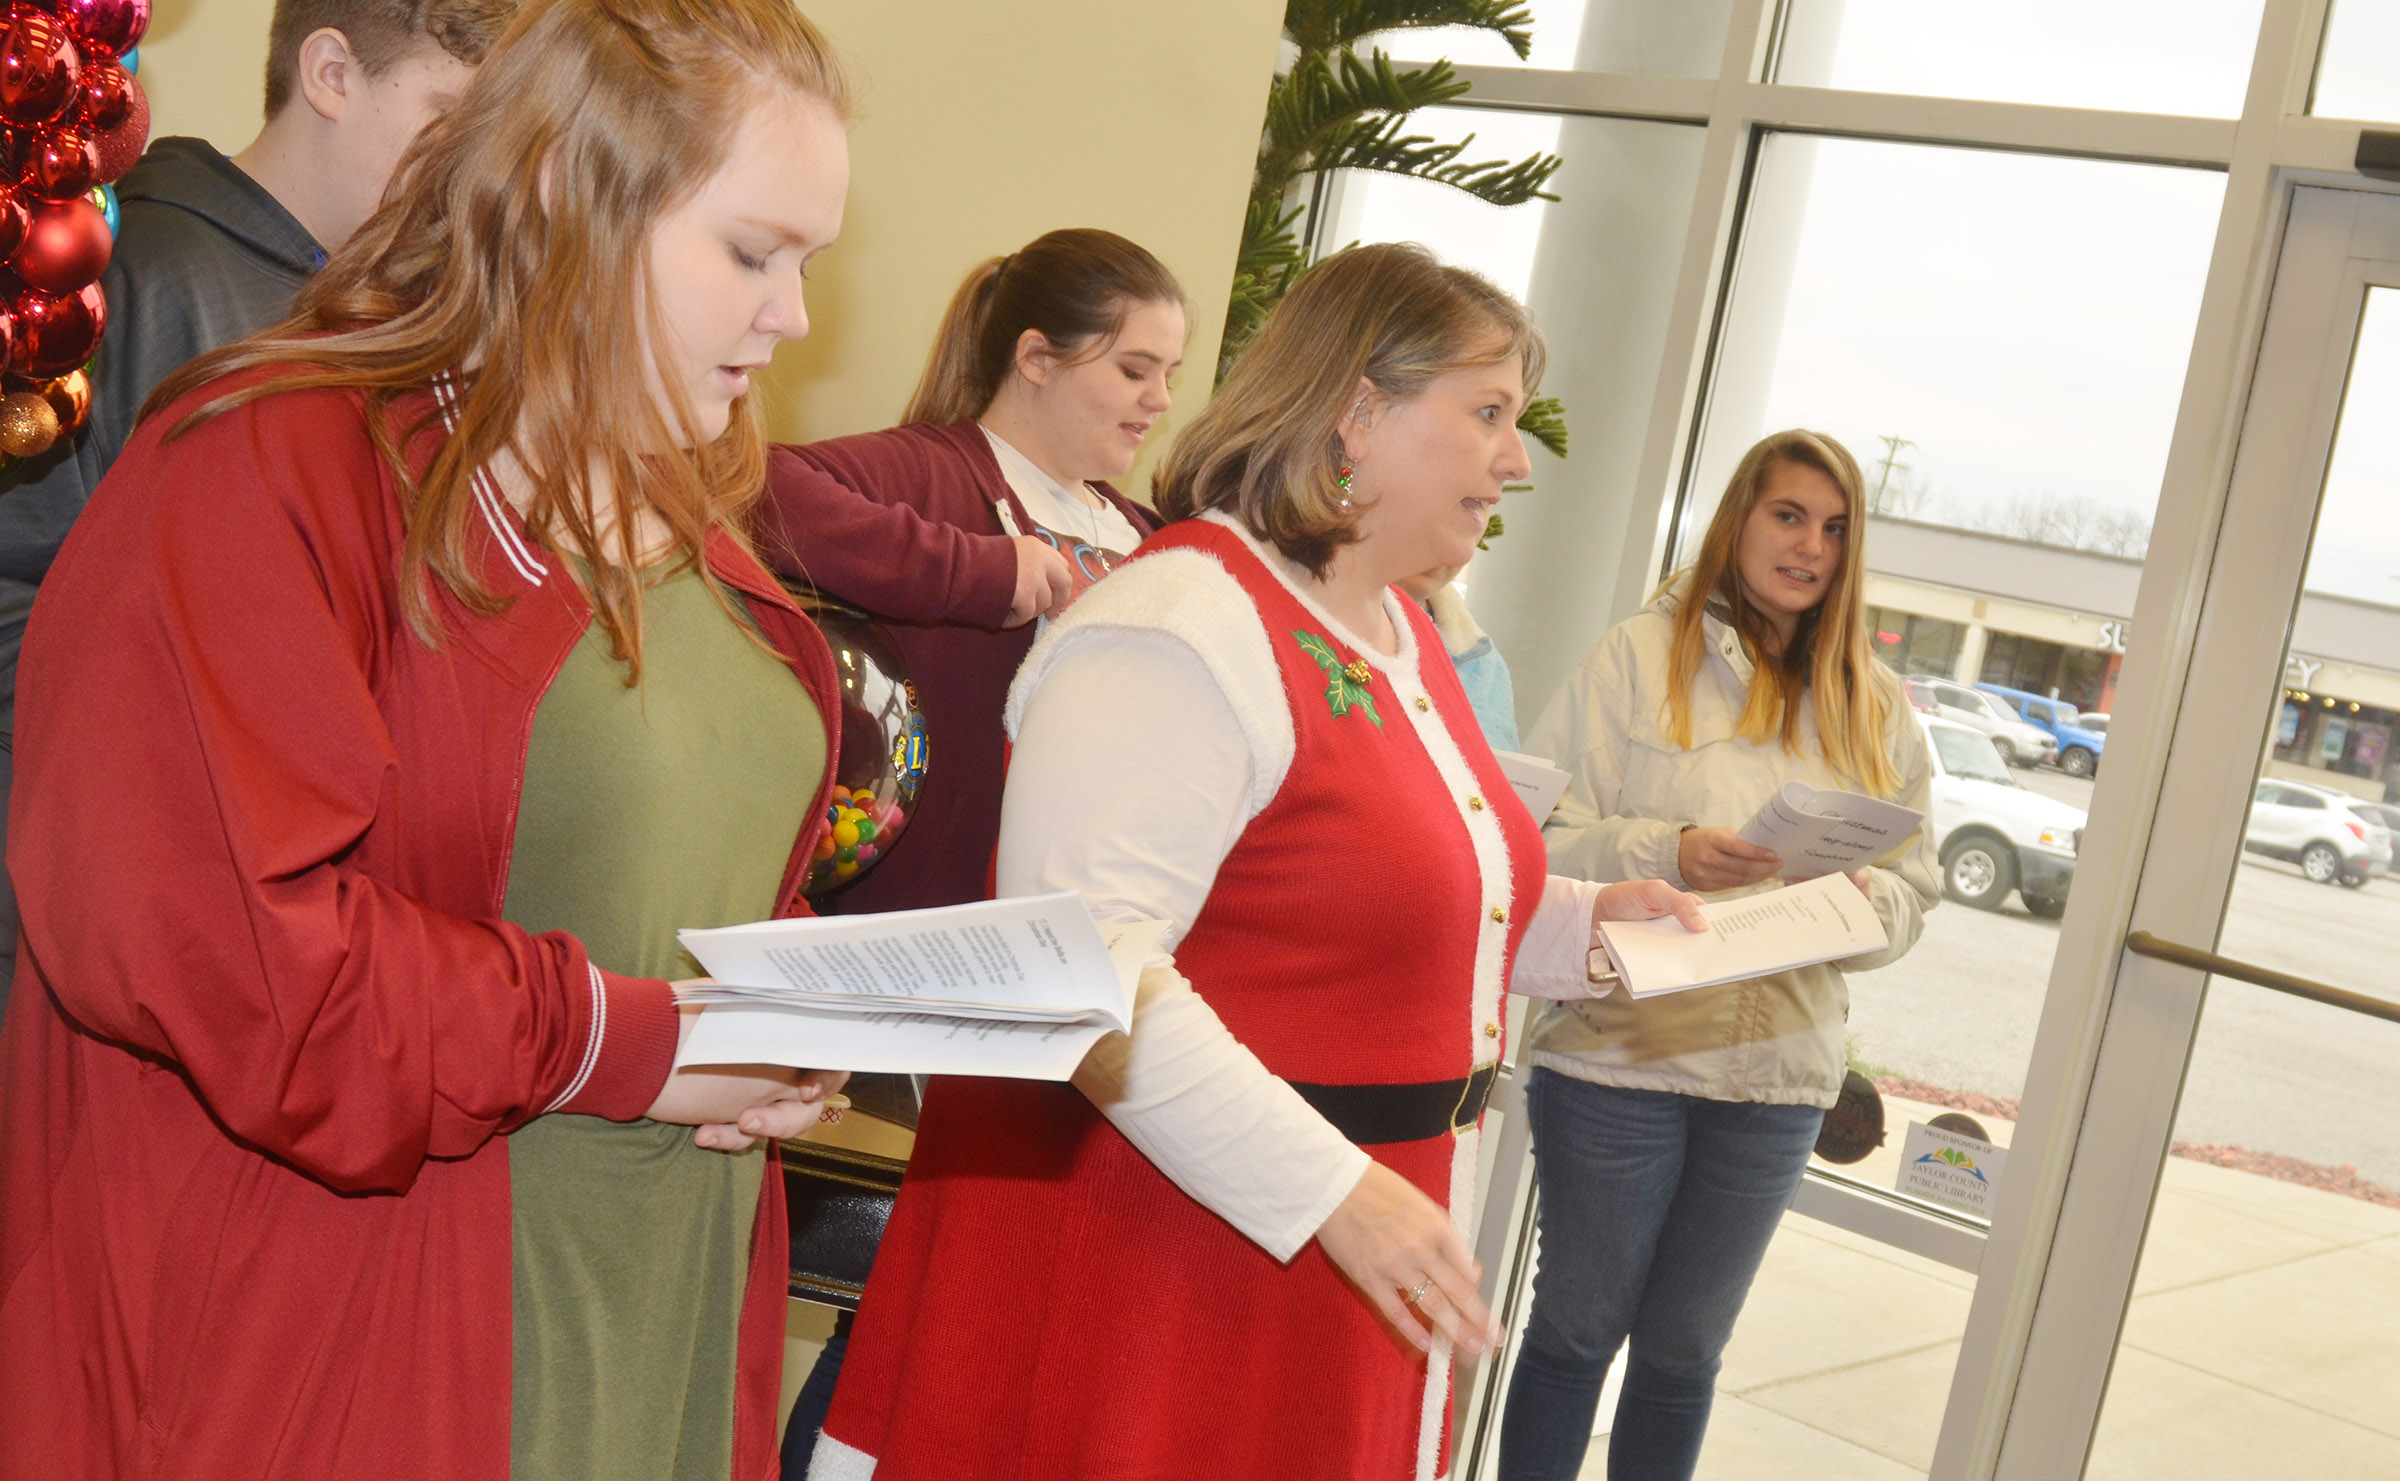 CHS choir members sing Christmas carols at Taylor County Bank. From left, front, are freshman Trinity Lobb and music teacher Cyndi Chadwick. Back, freshman Noah Mardis and seniors Vivian Brown and Tiffany Kane.